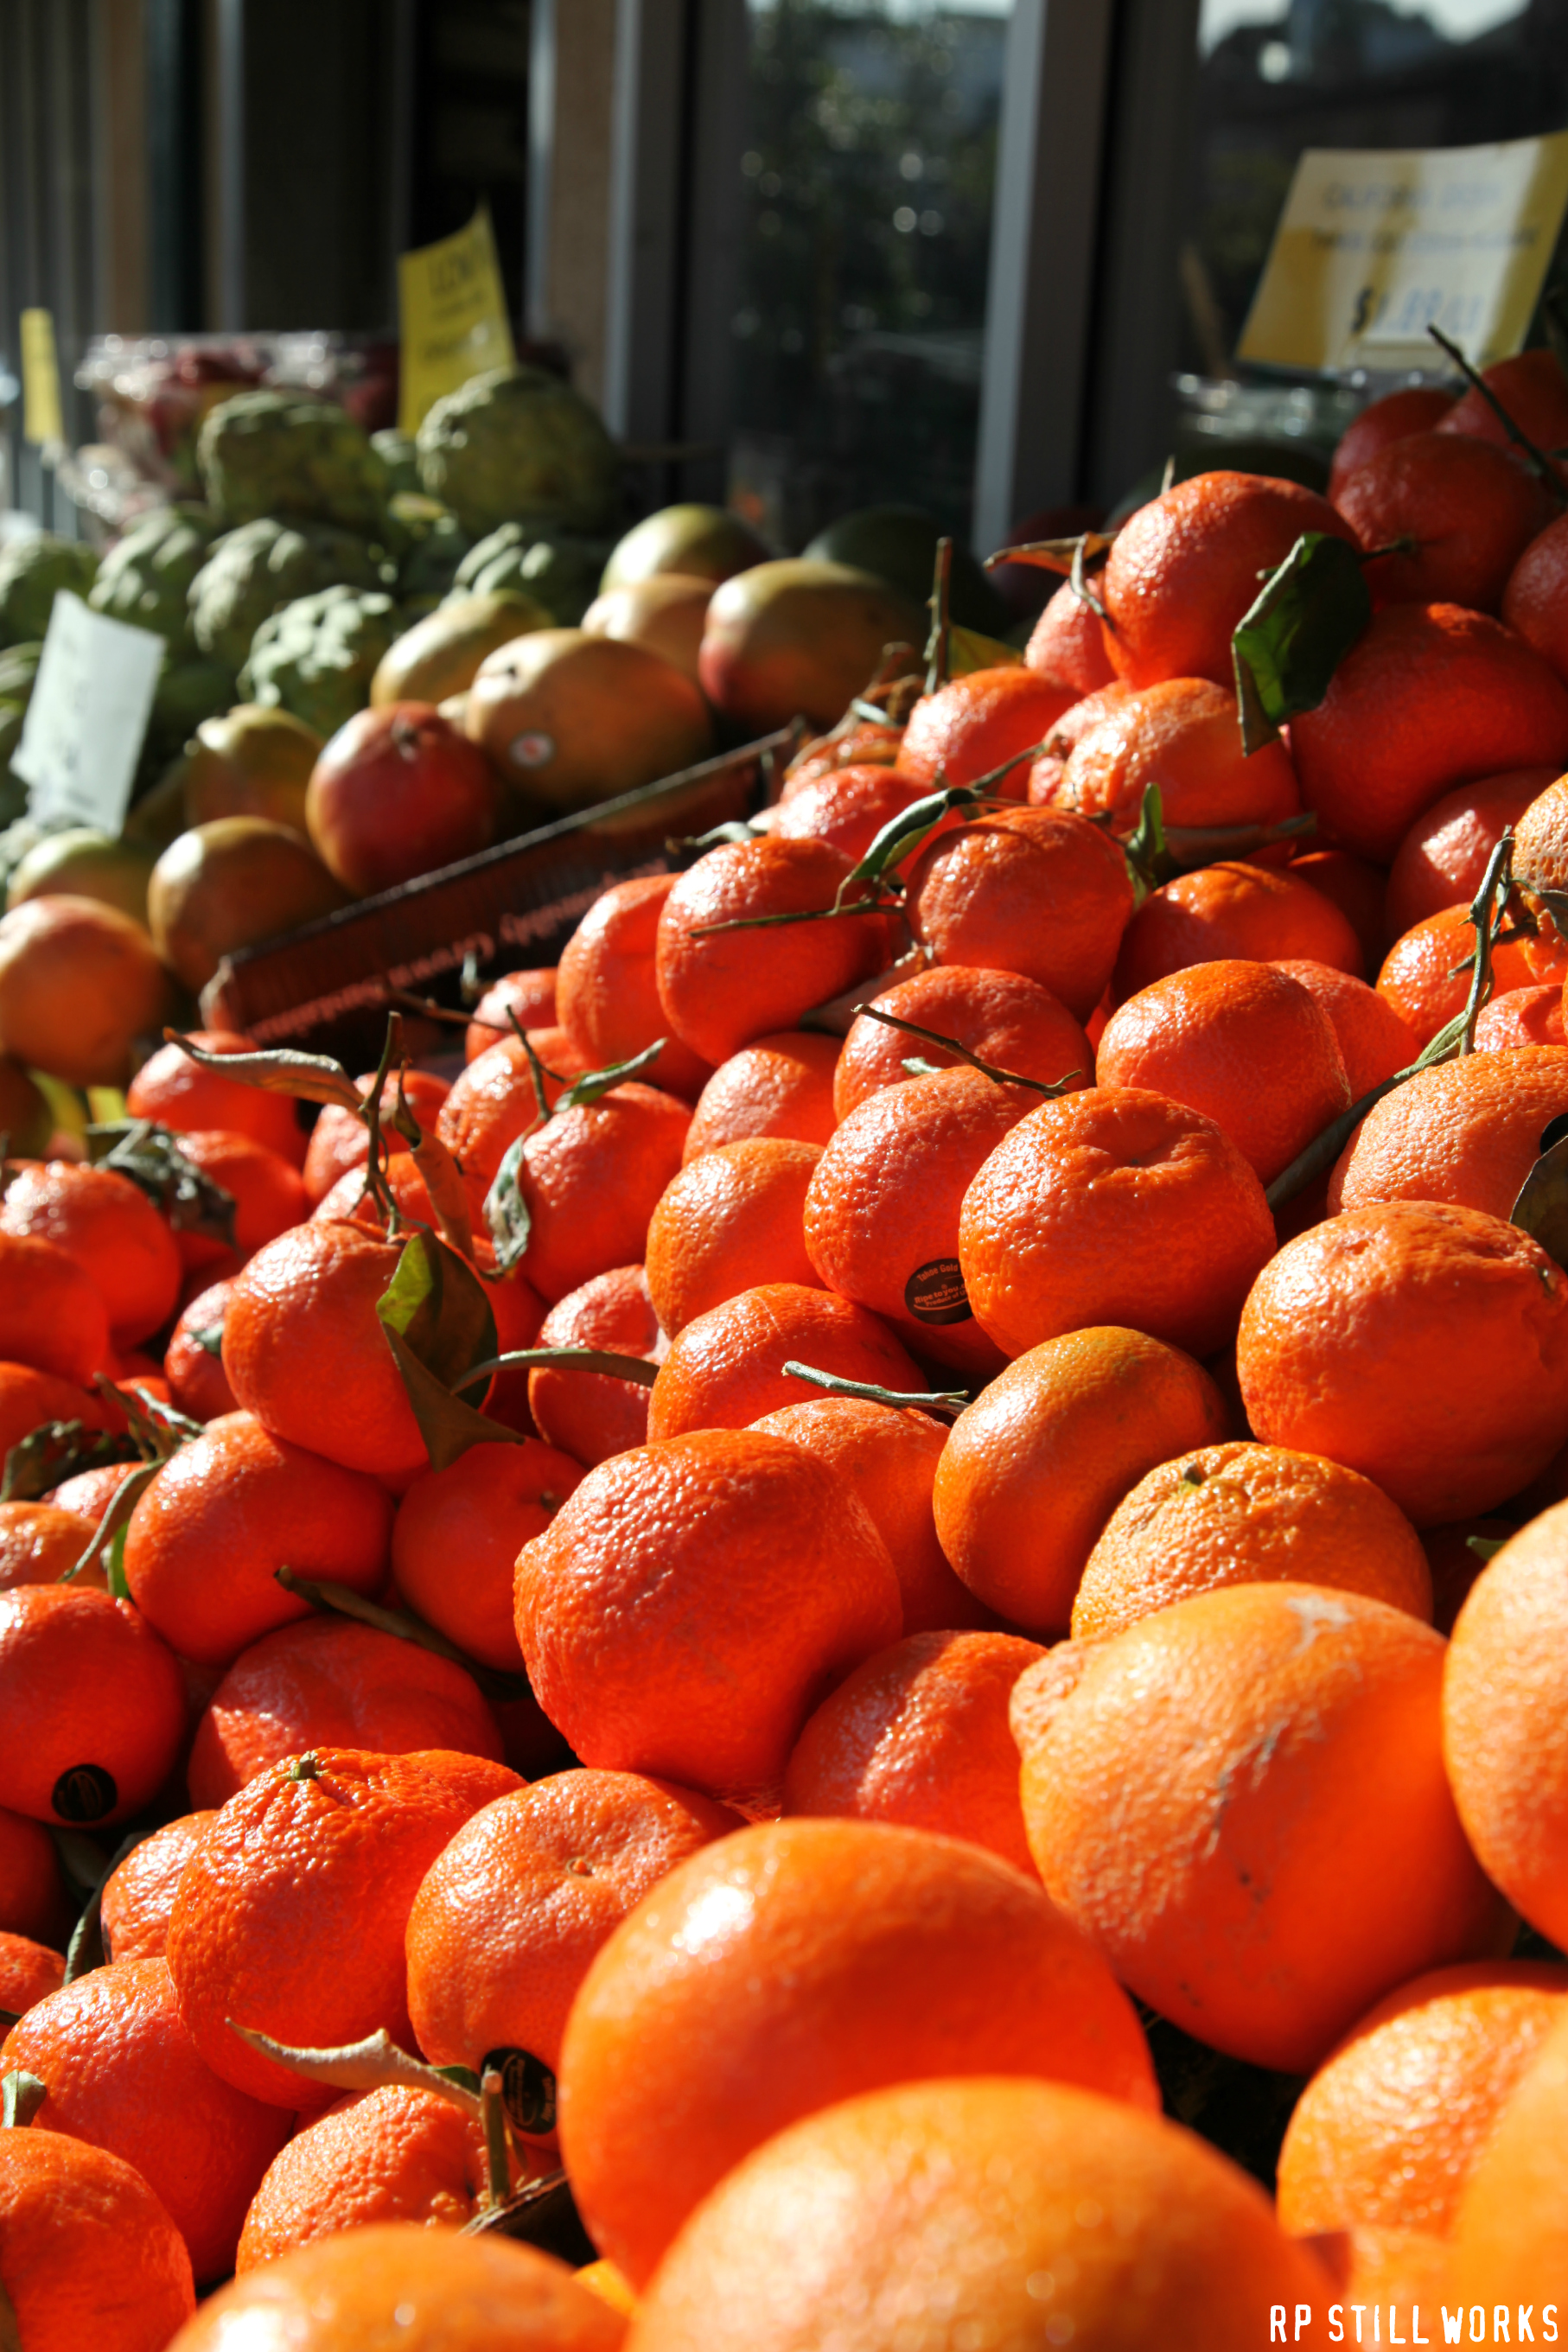 Oranges with Stems